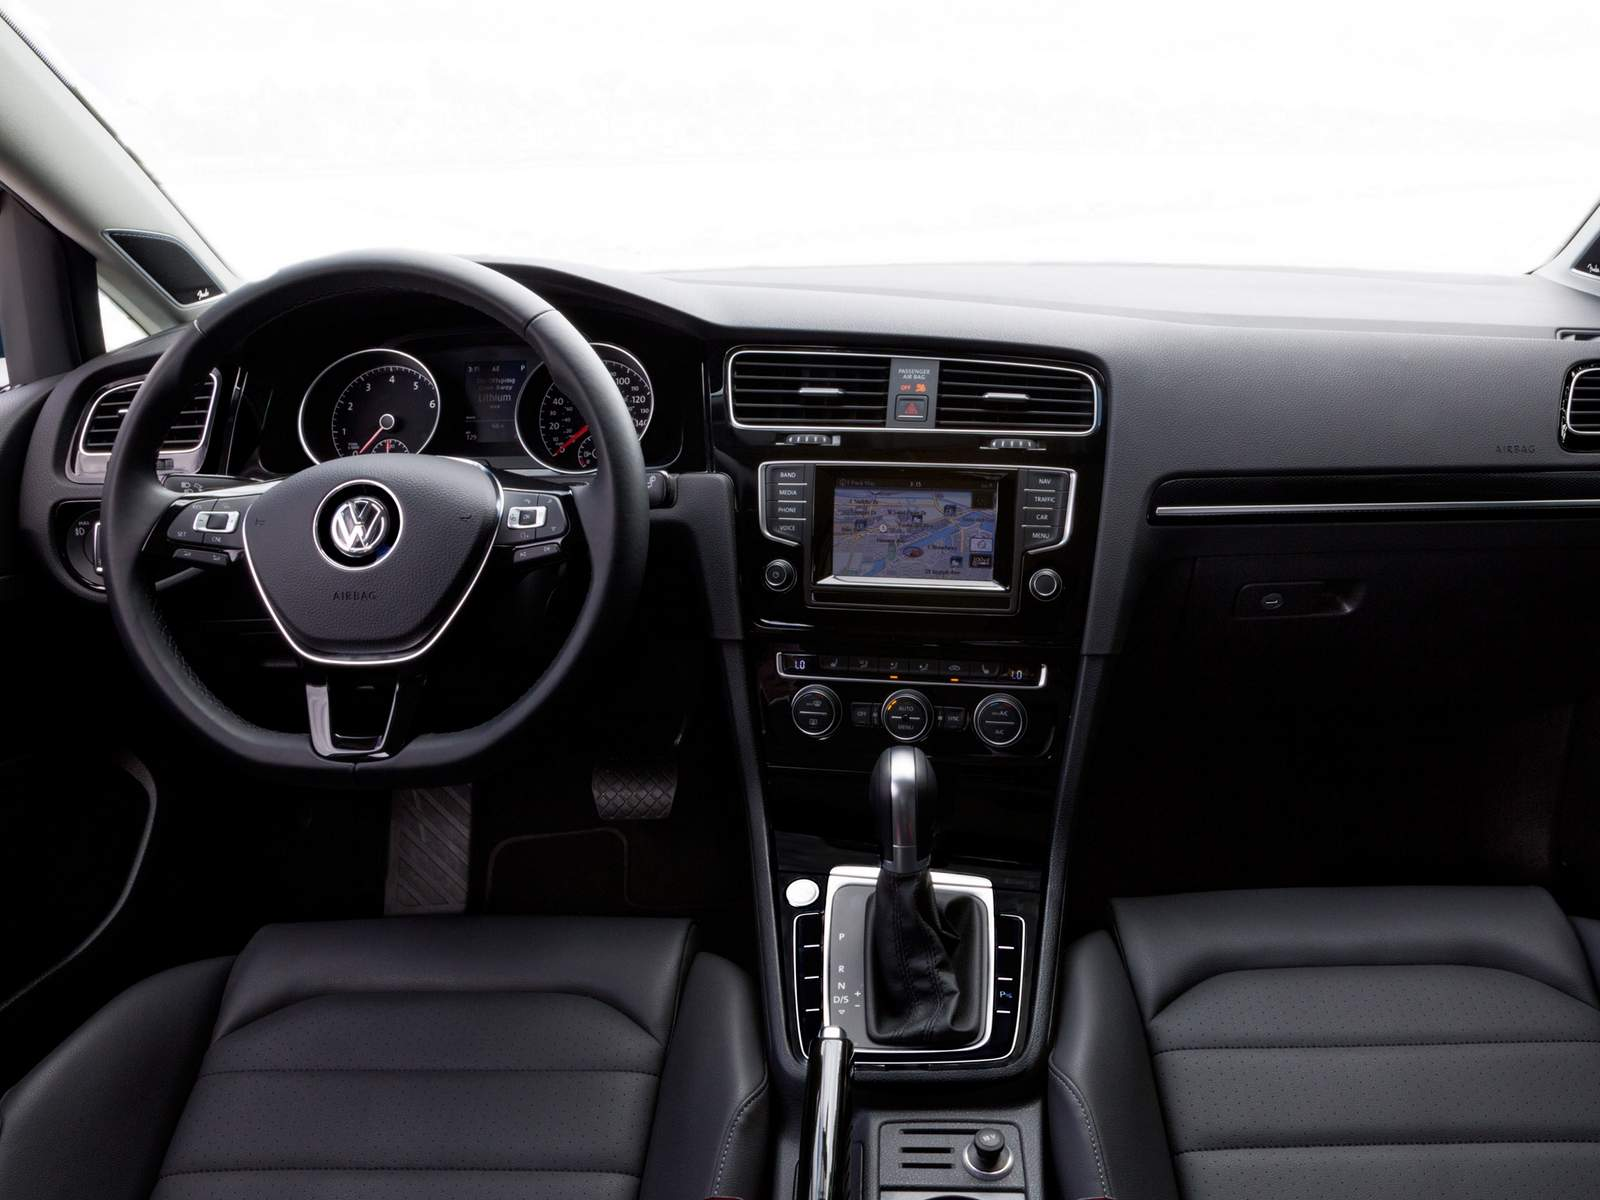 VW Golf Variant 2016 - interior